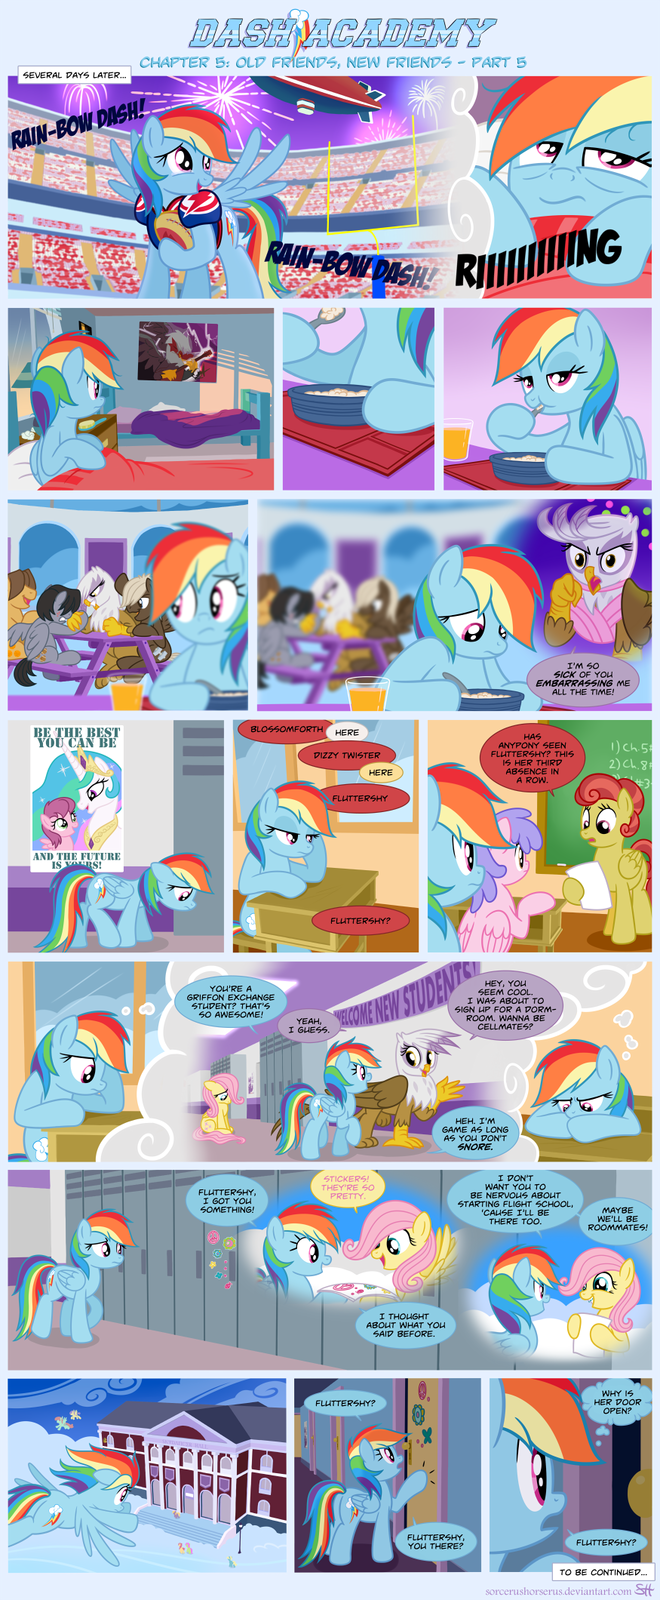 Dash Academy 5- Old Friends, New Friends 5